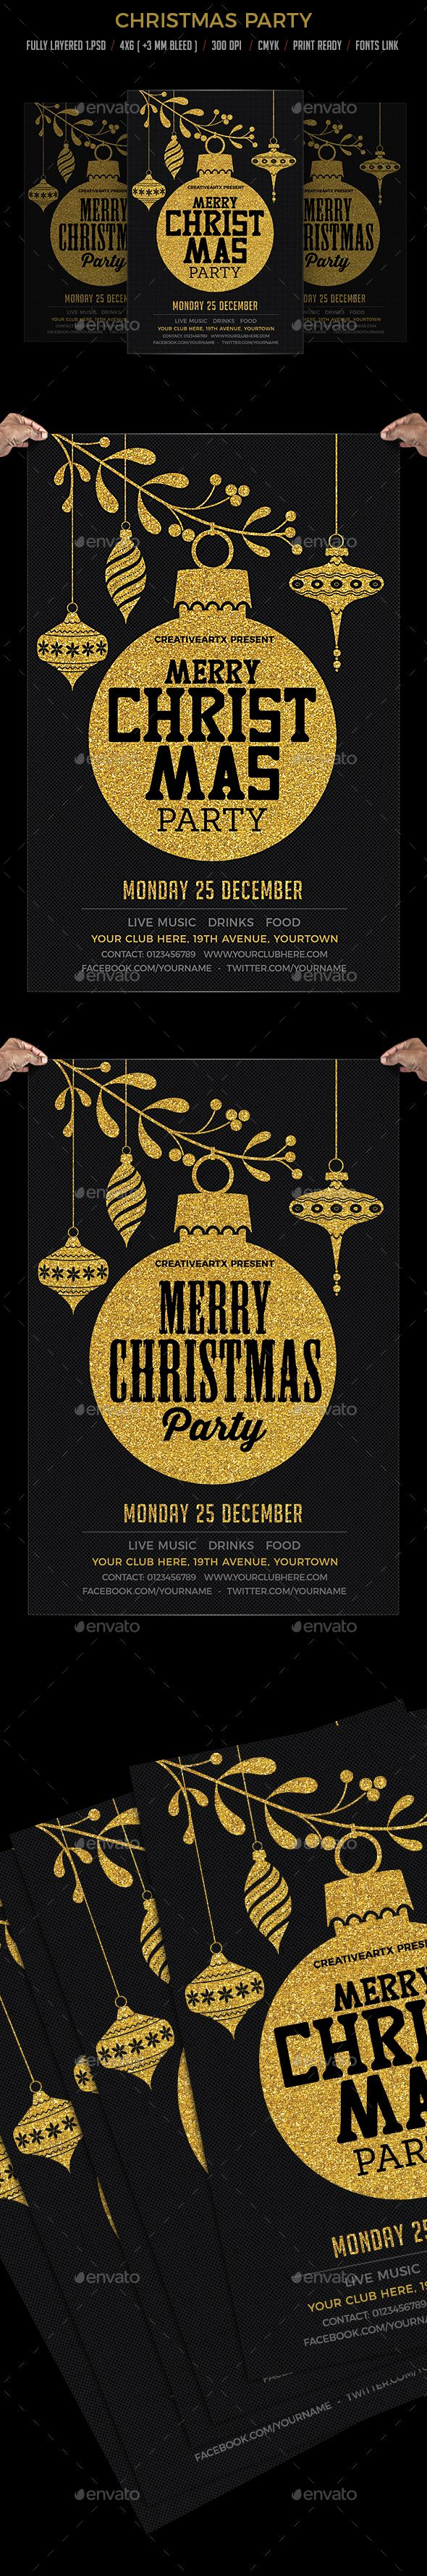 Christmas Party Flyer Invitation The 119 best